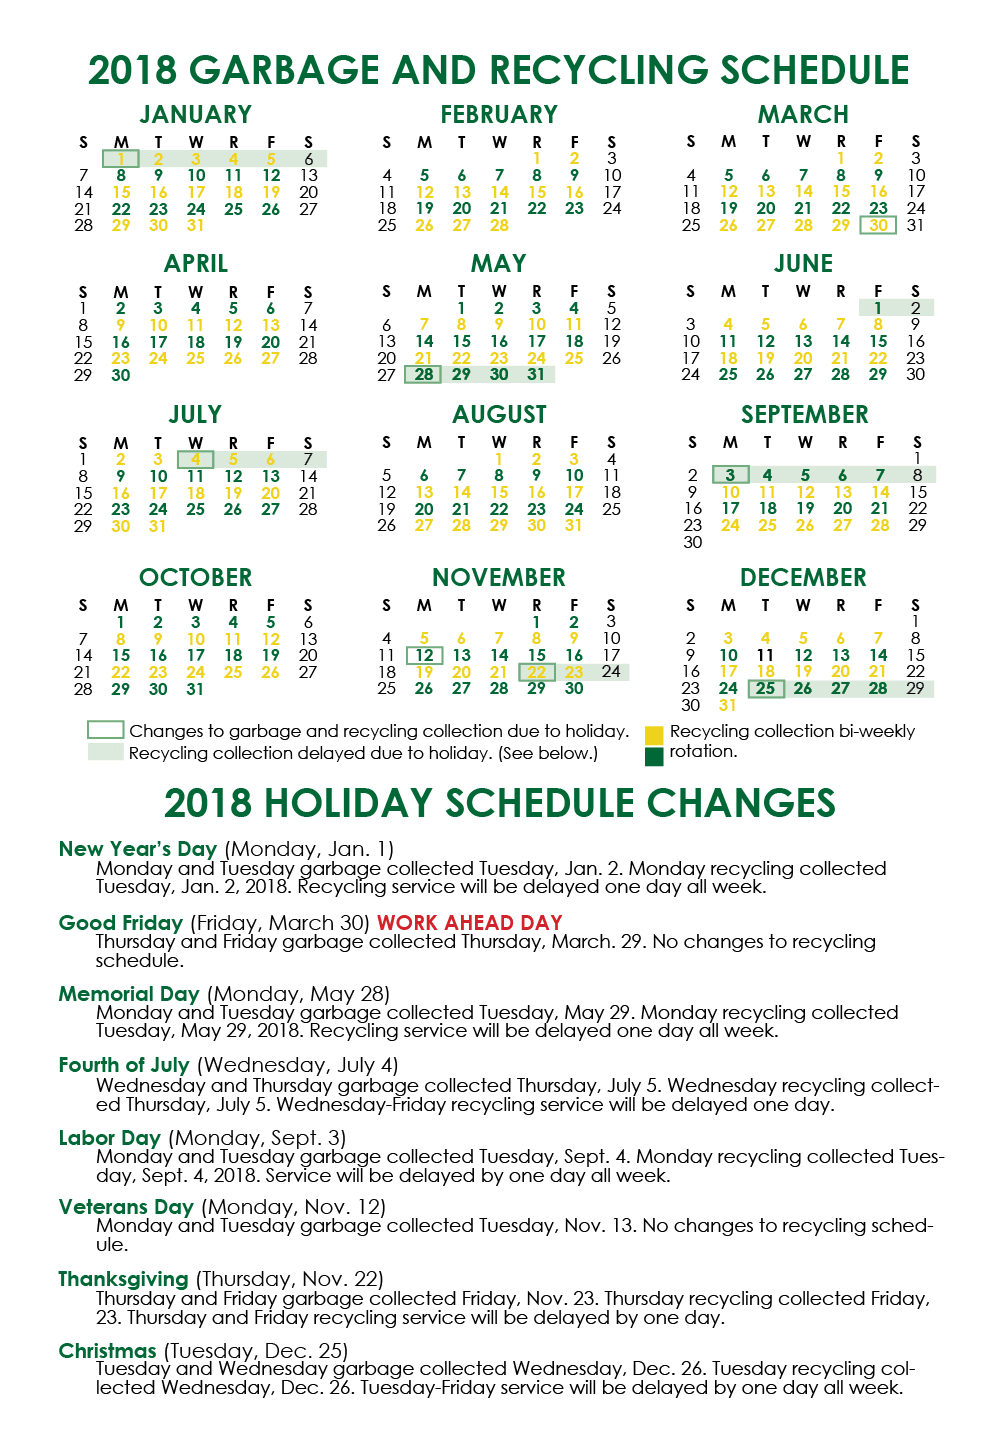 2018 Holiday Schedule Chart